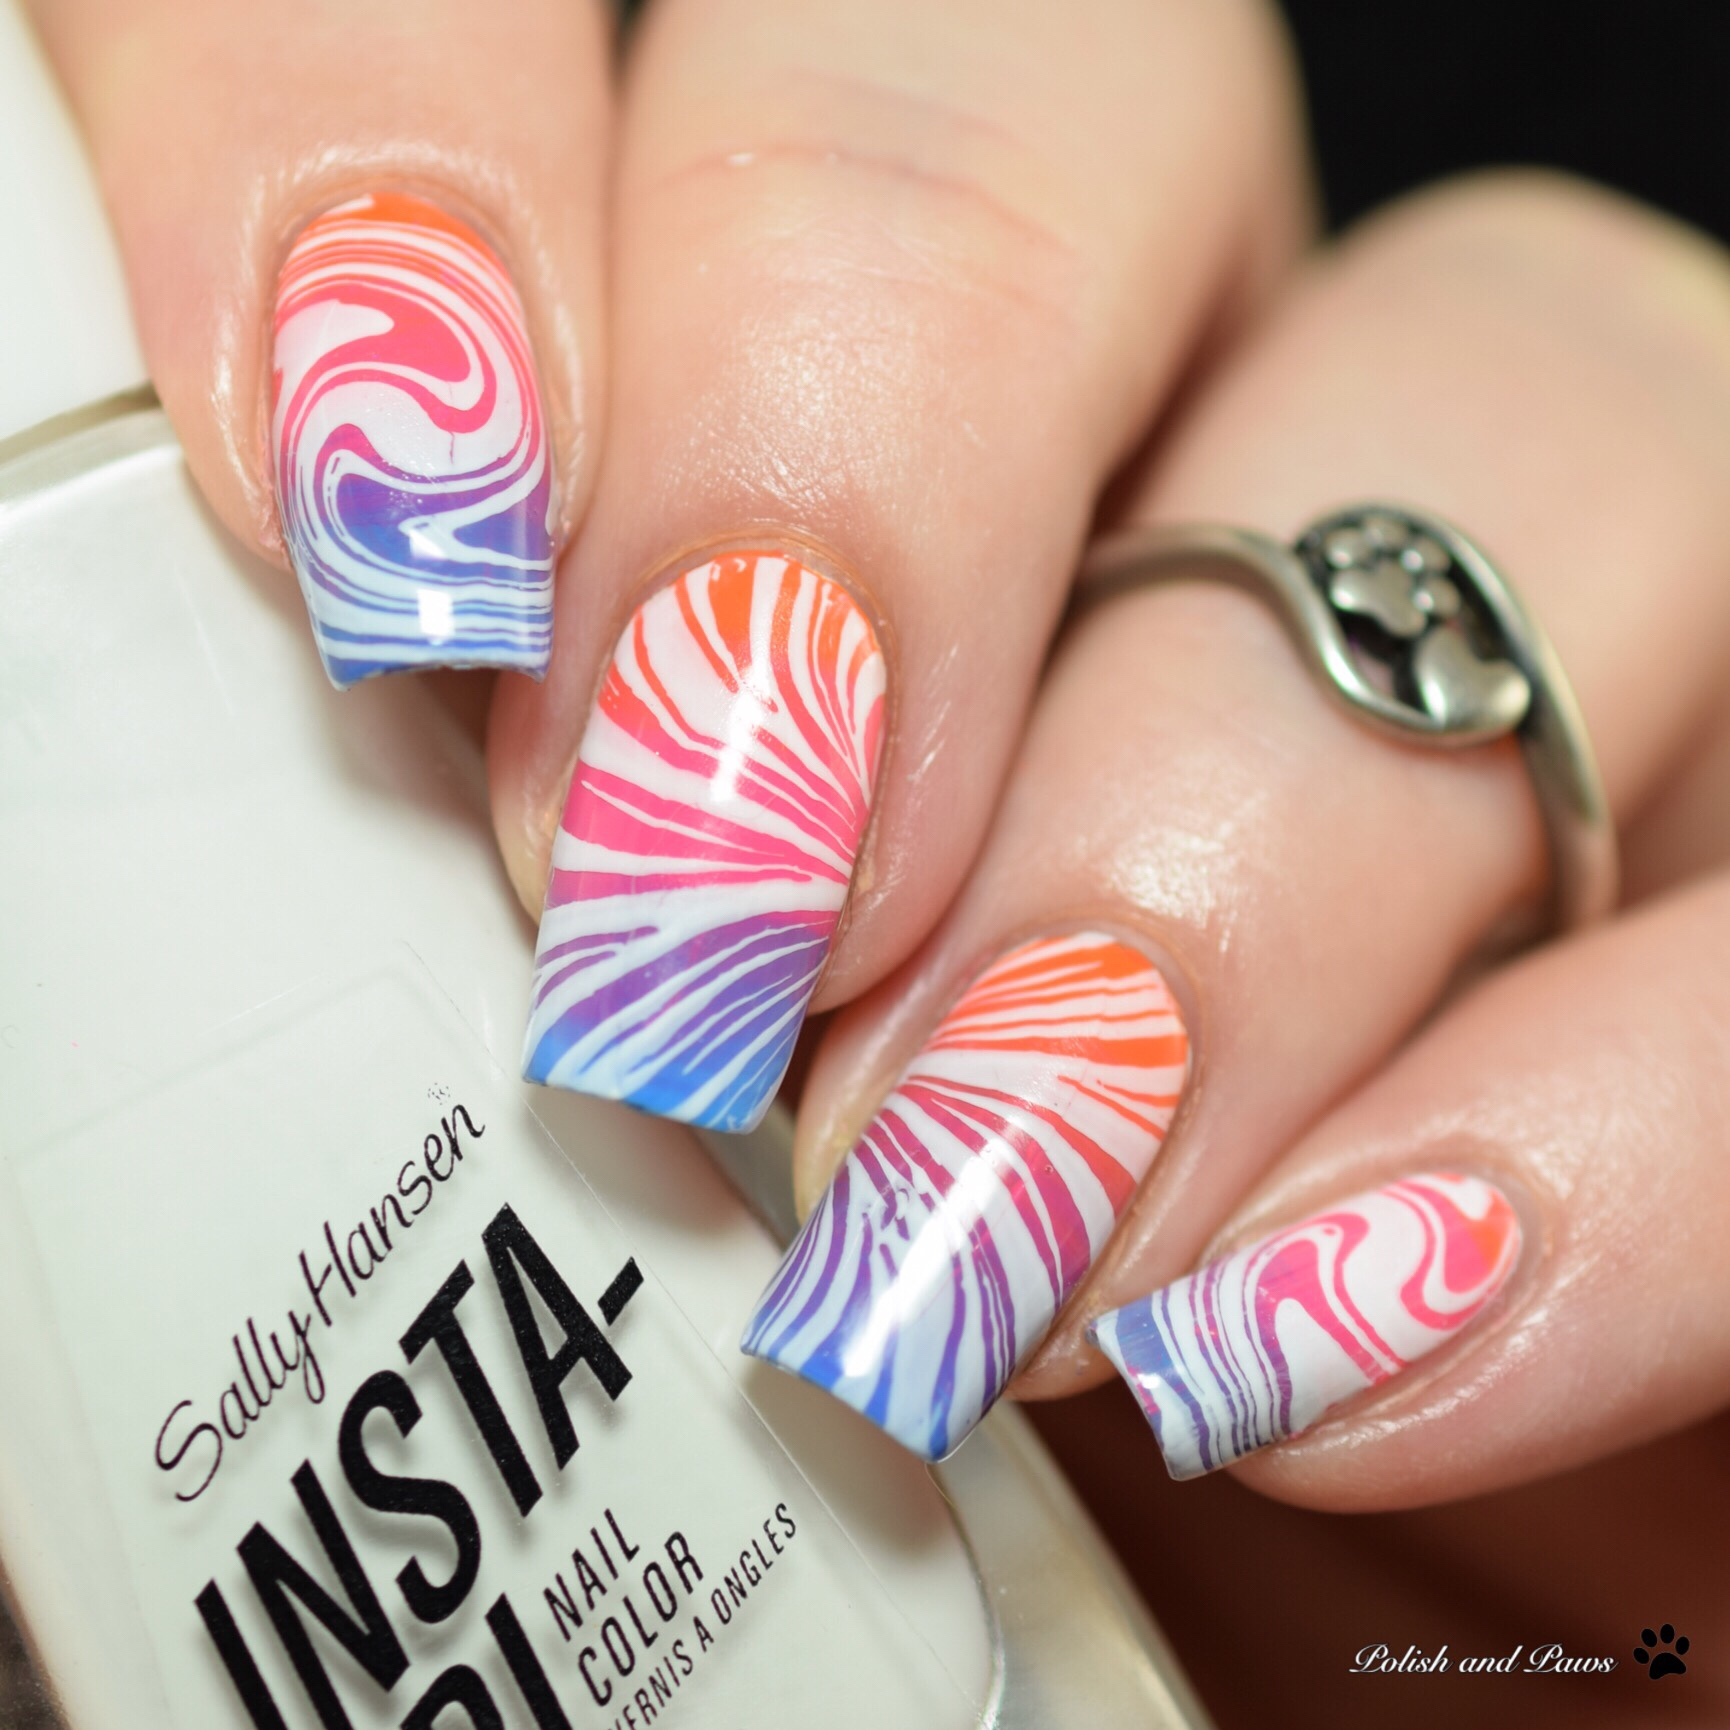 The Digit-al Dozen does Stamping: Gradient Stamping